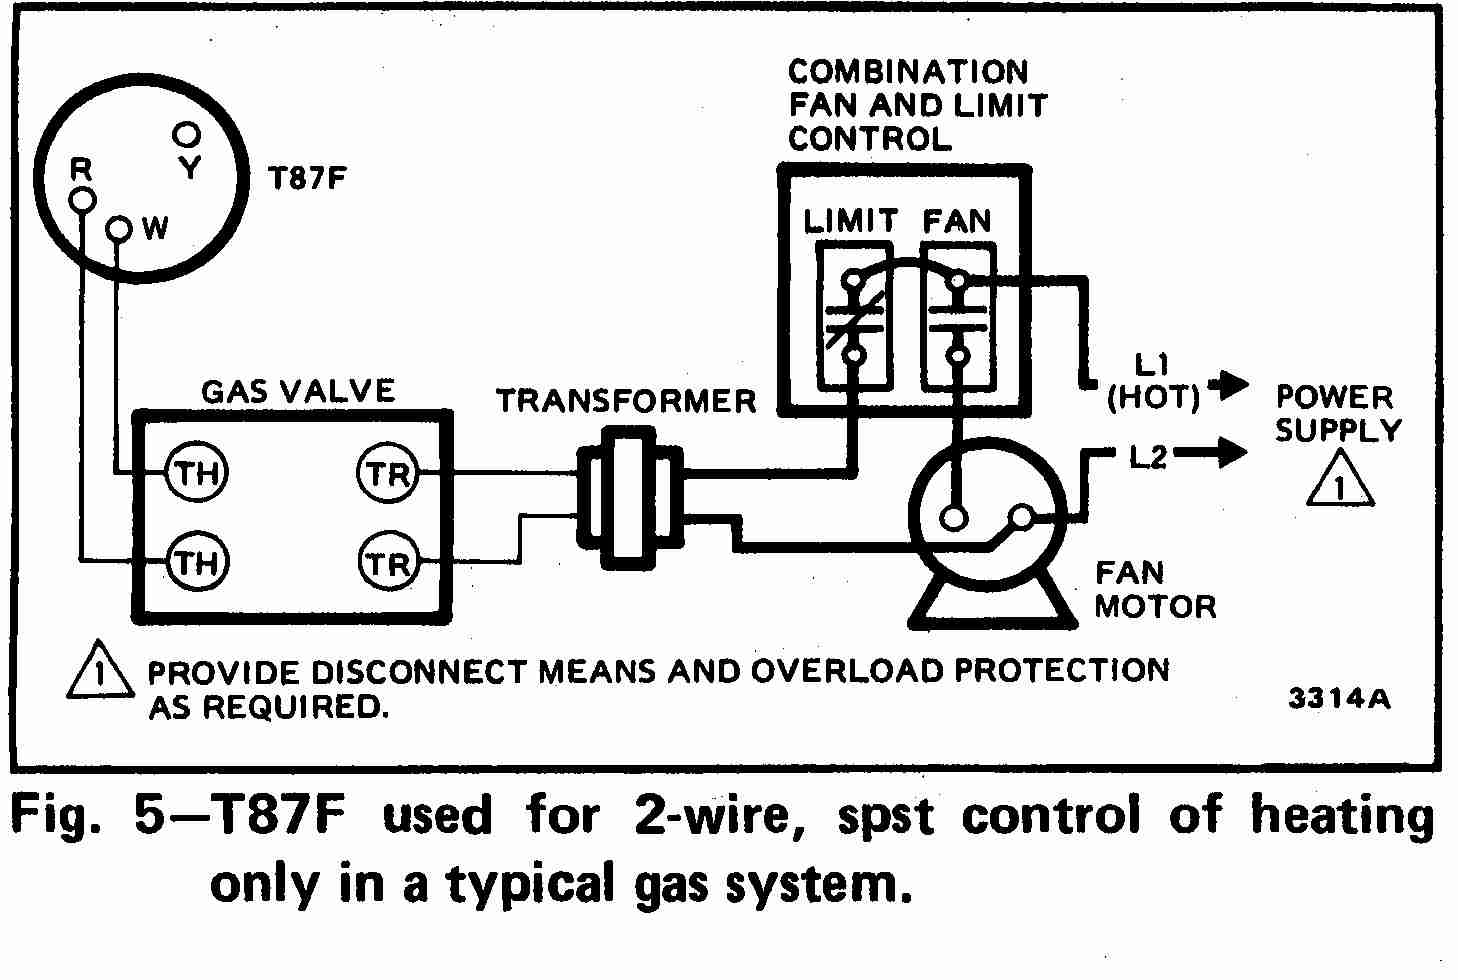 typical gas fired heating system details from Honeywell Controls #666666